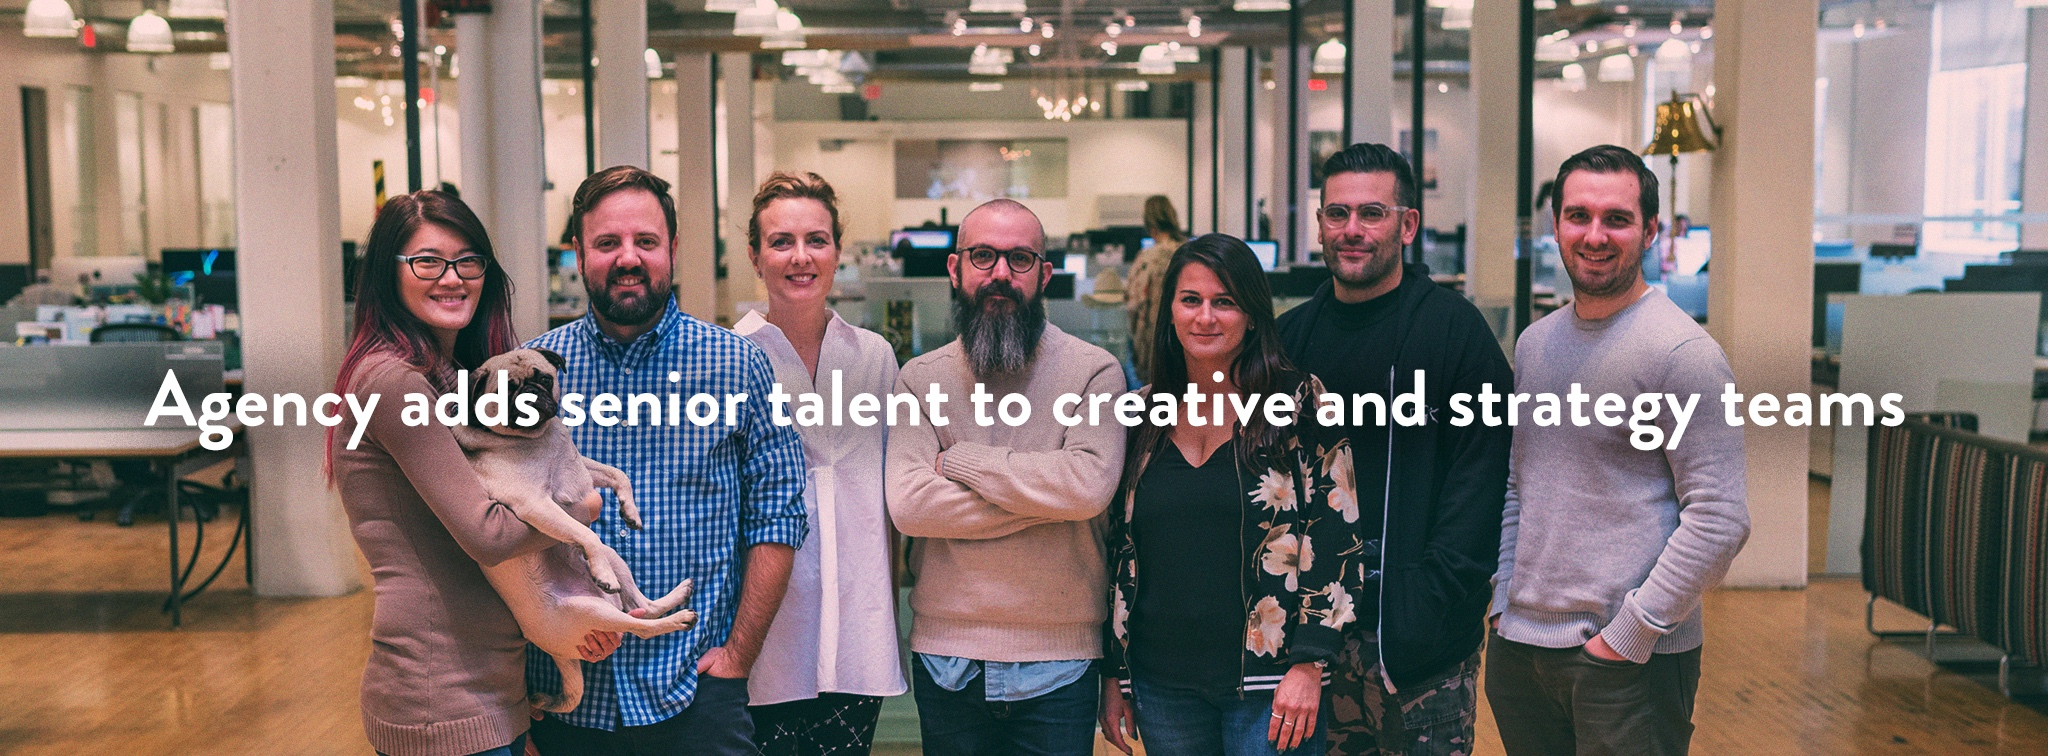 Agency adds senior talent to creative and strategy teams